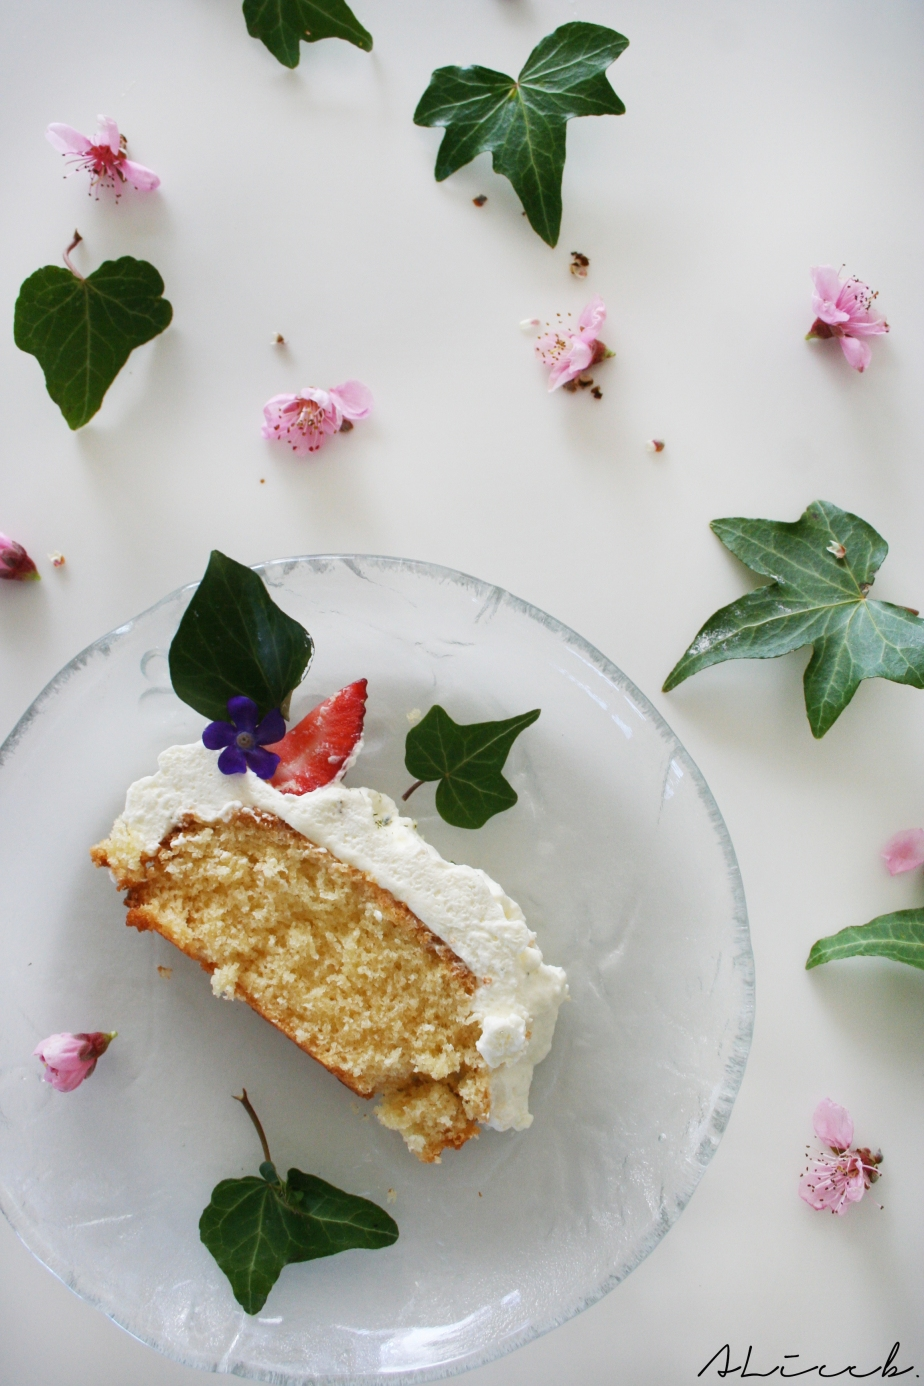 Fashion Vs Food: Easter Almond Cake with Mascarpone Cream Topping Vs Chanel